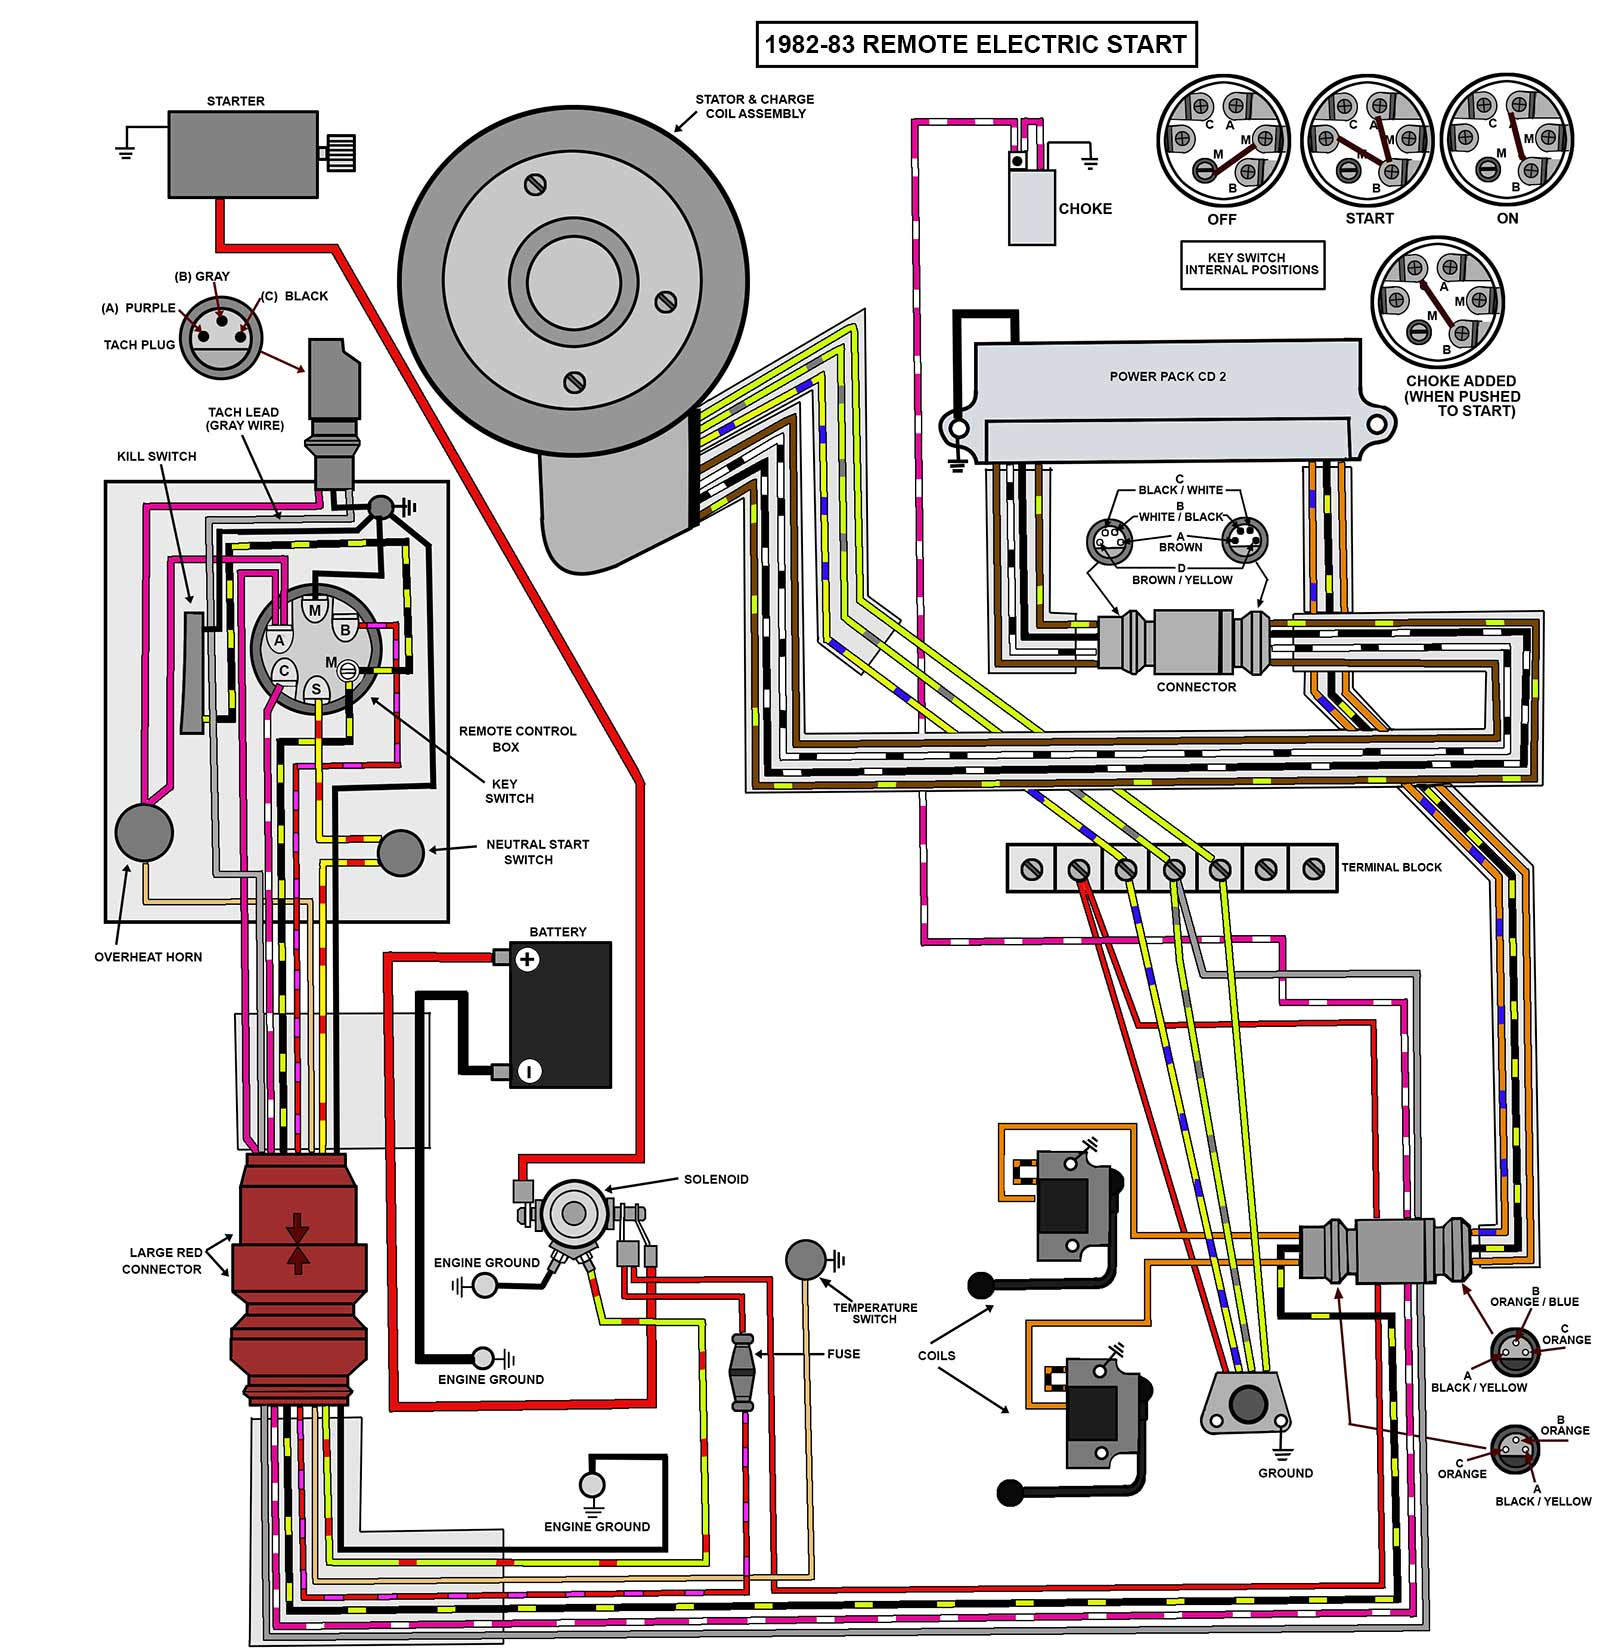 25_35_82 83_elec remote mastertech marine evinrude johnson outboard wiring diagrams 1992 johnson 40 hp outboard wiring diagram at soozxer.org